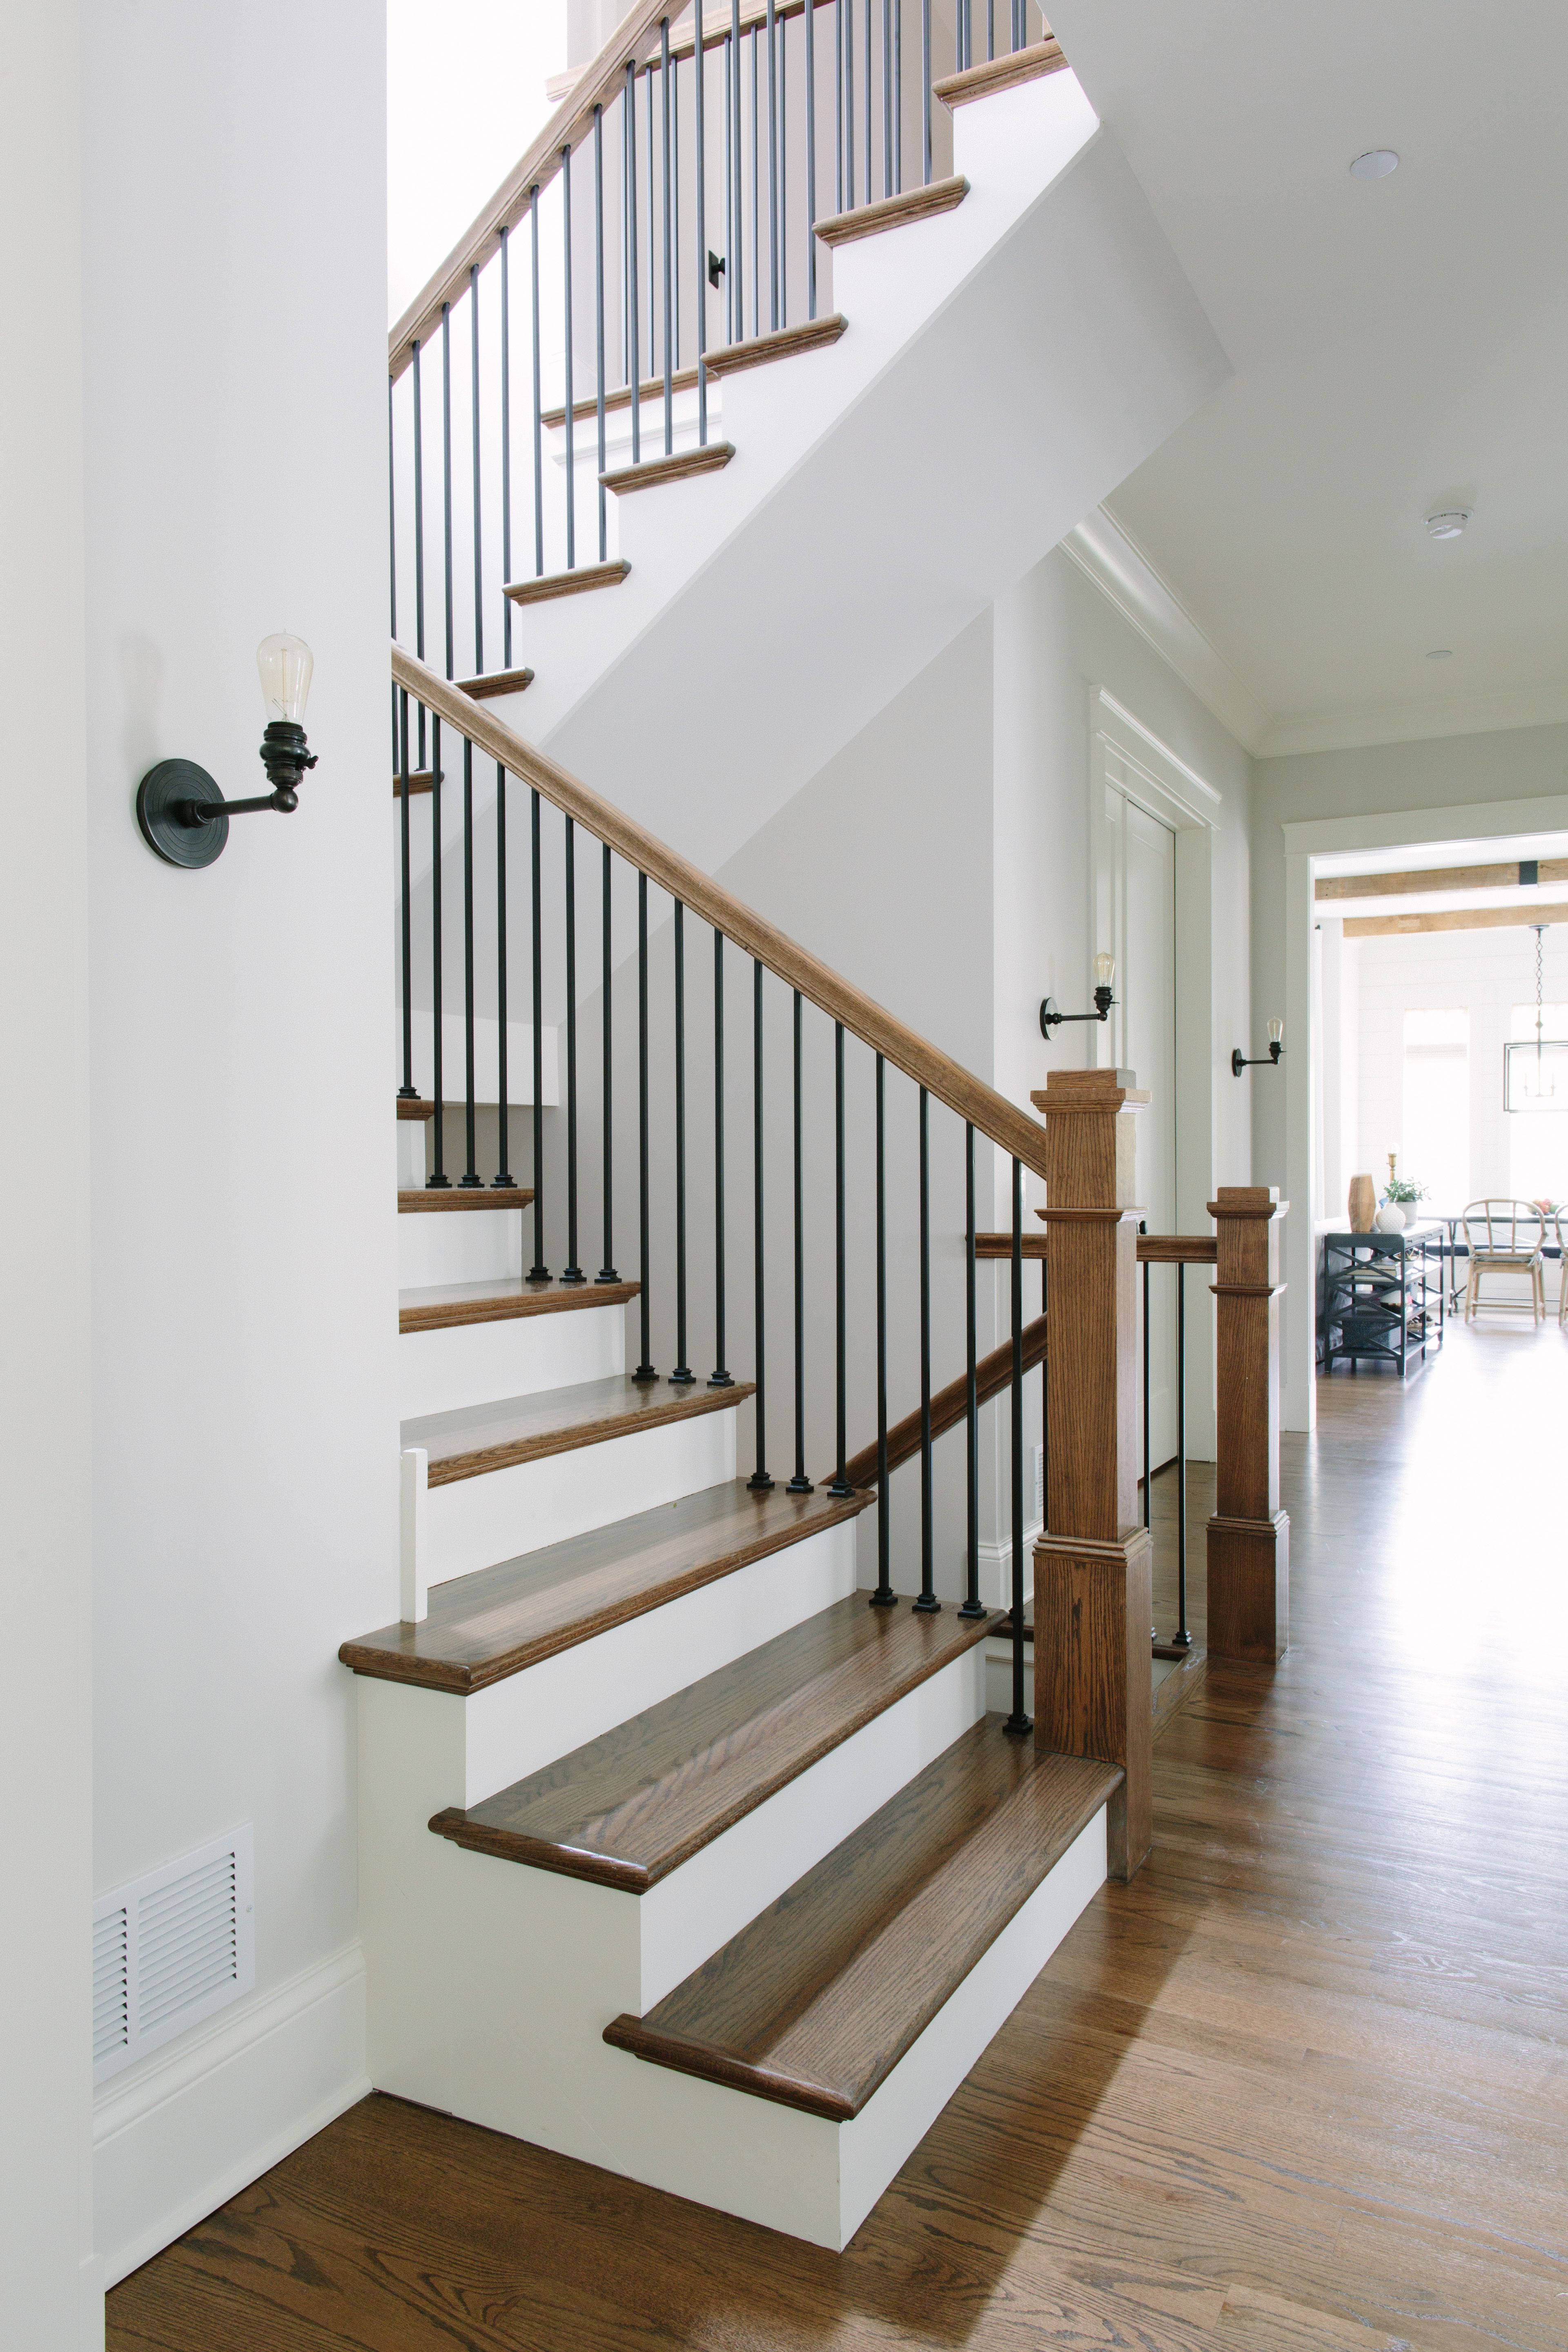 Kate Marker Interiors Dove Residence Staircase Design Wood